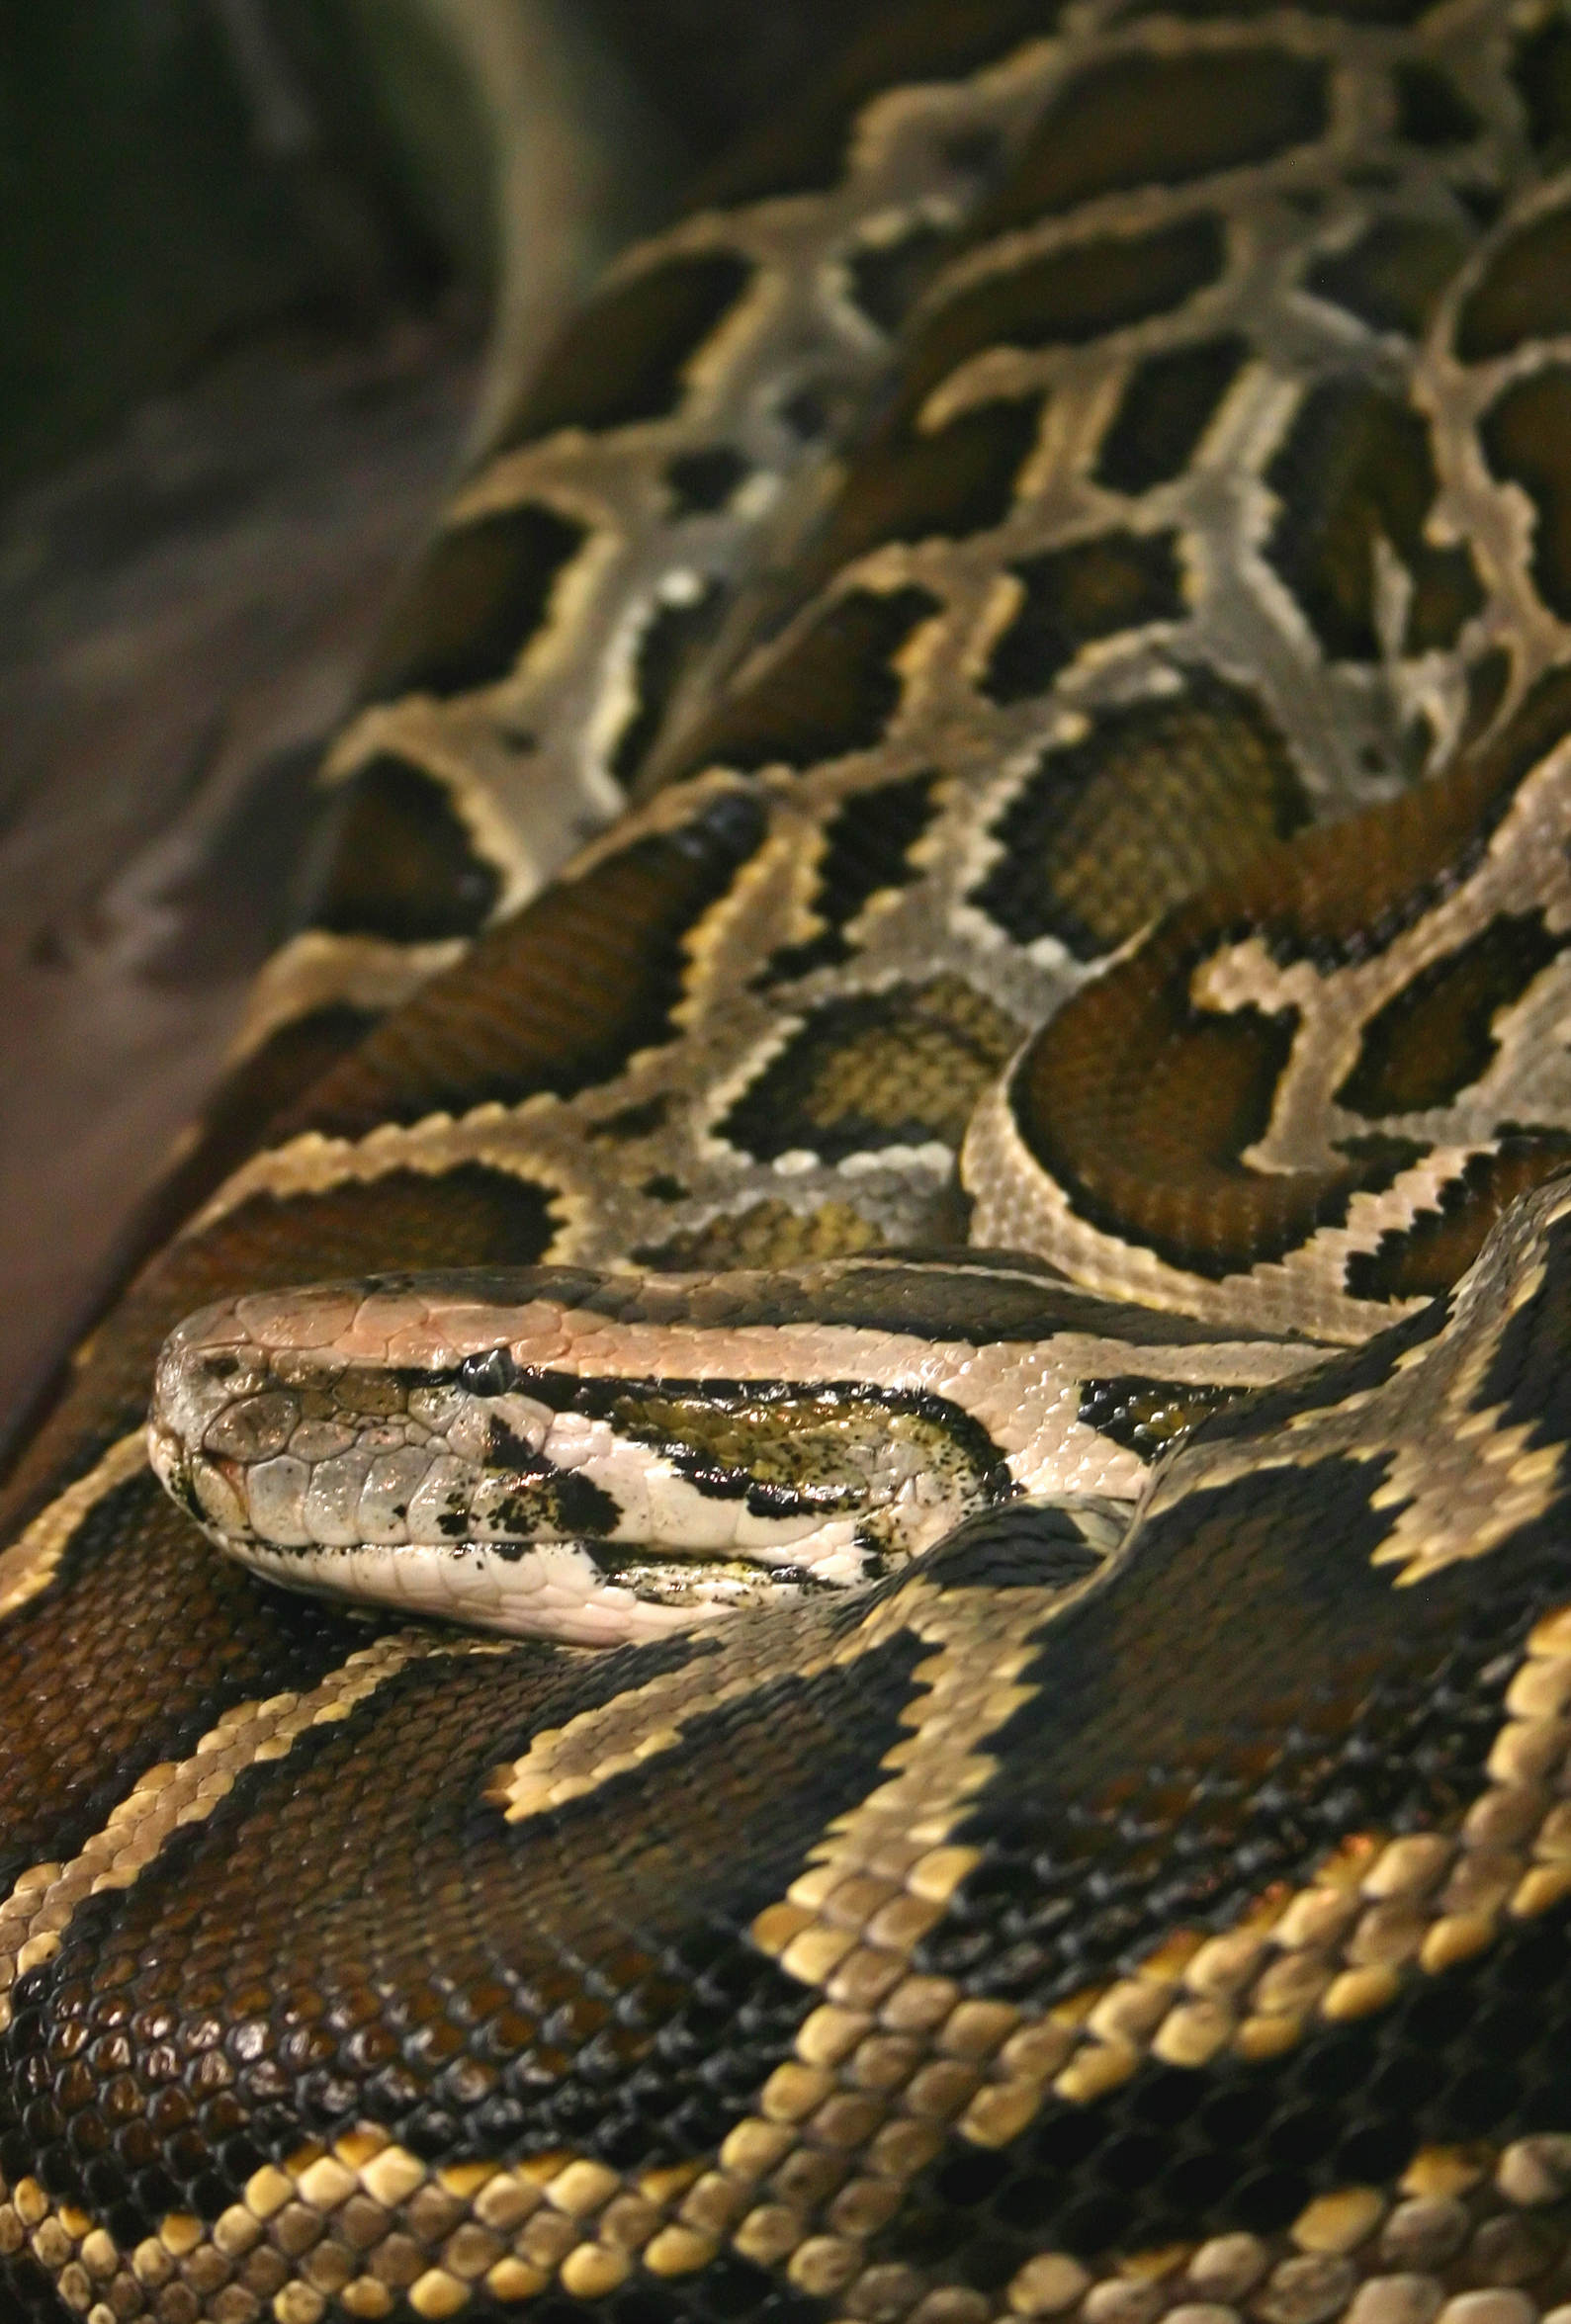 burmese python by William Picard